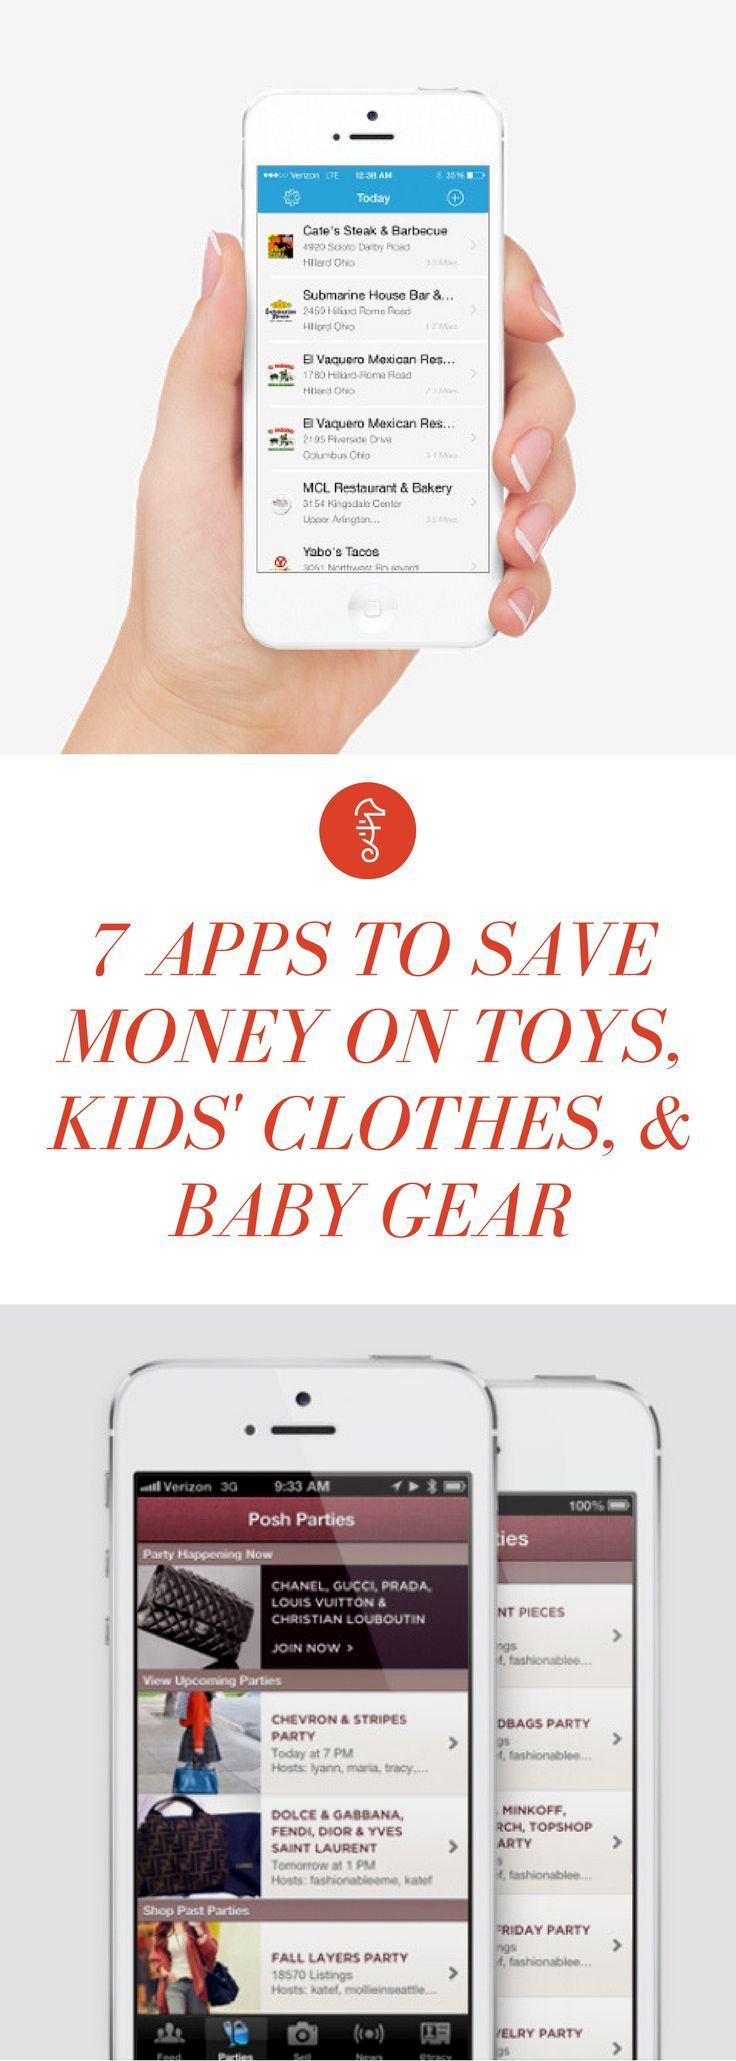 7 Apps to Save Mad Money On Toys, Kids' Clothes, and Baby